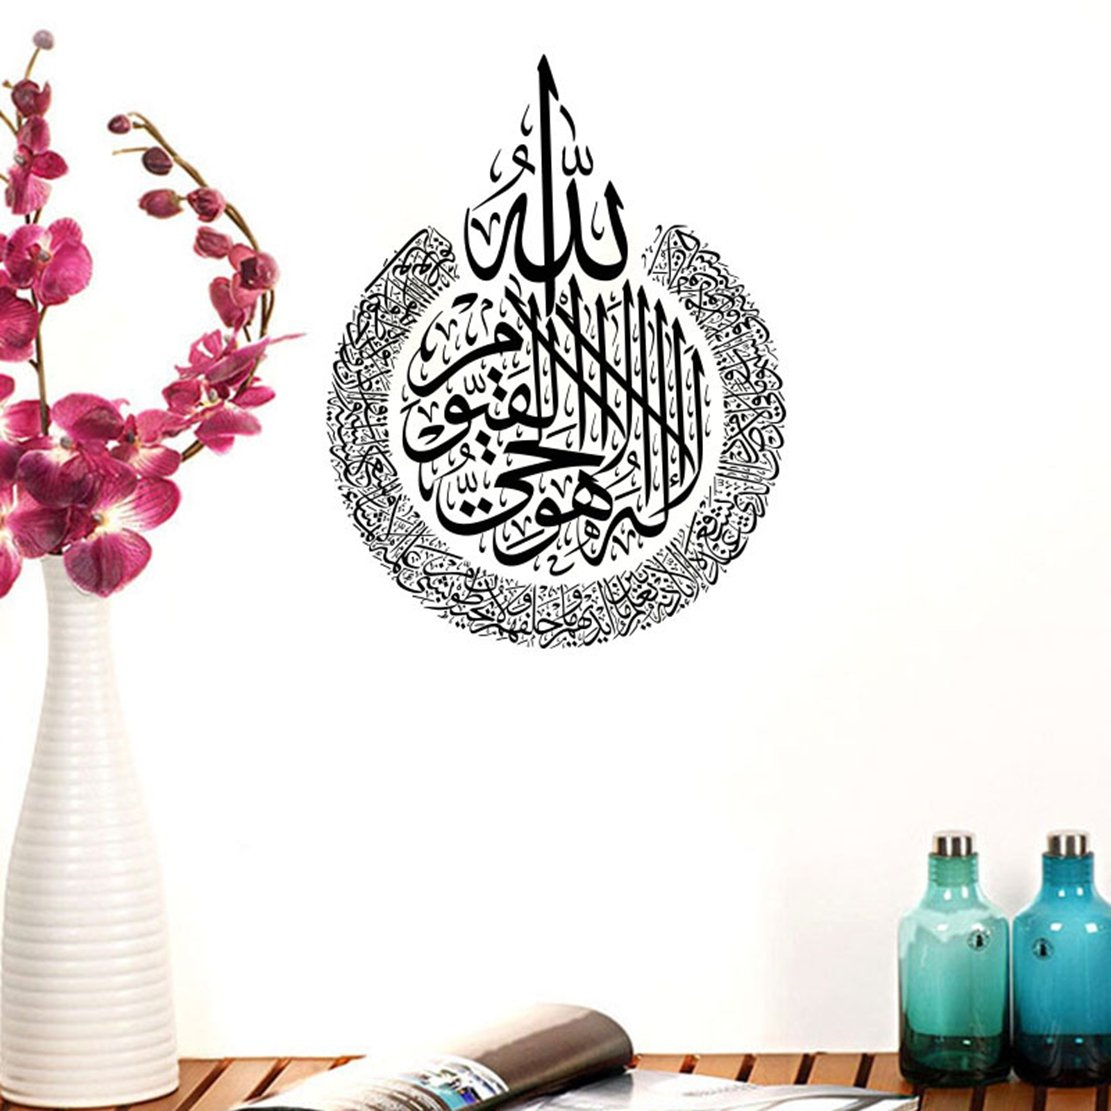 U-Shark DIY Removable Islamic Muslim Culture Surah Arabic Bismillah Allah Vinyl Wall Stickers/Decals Quran Quotes Calligraphy as Home Mural Art Decorator 9784(58x75cm)